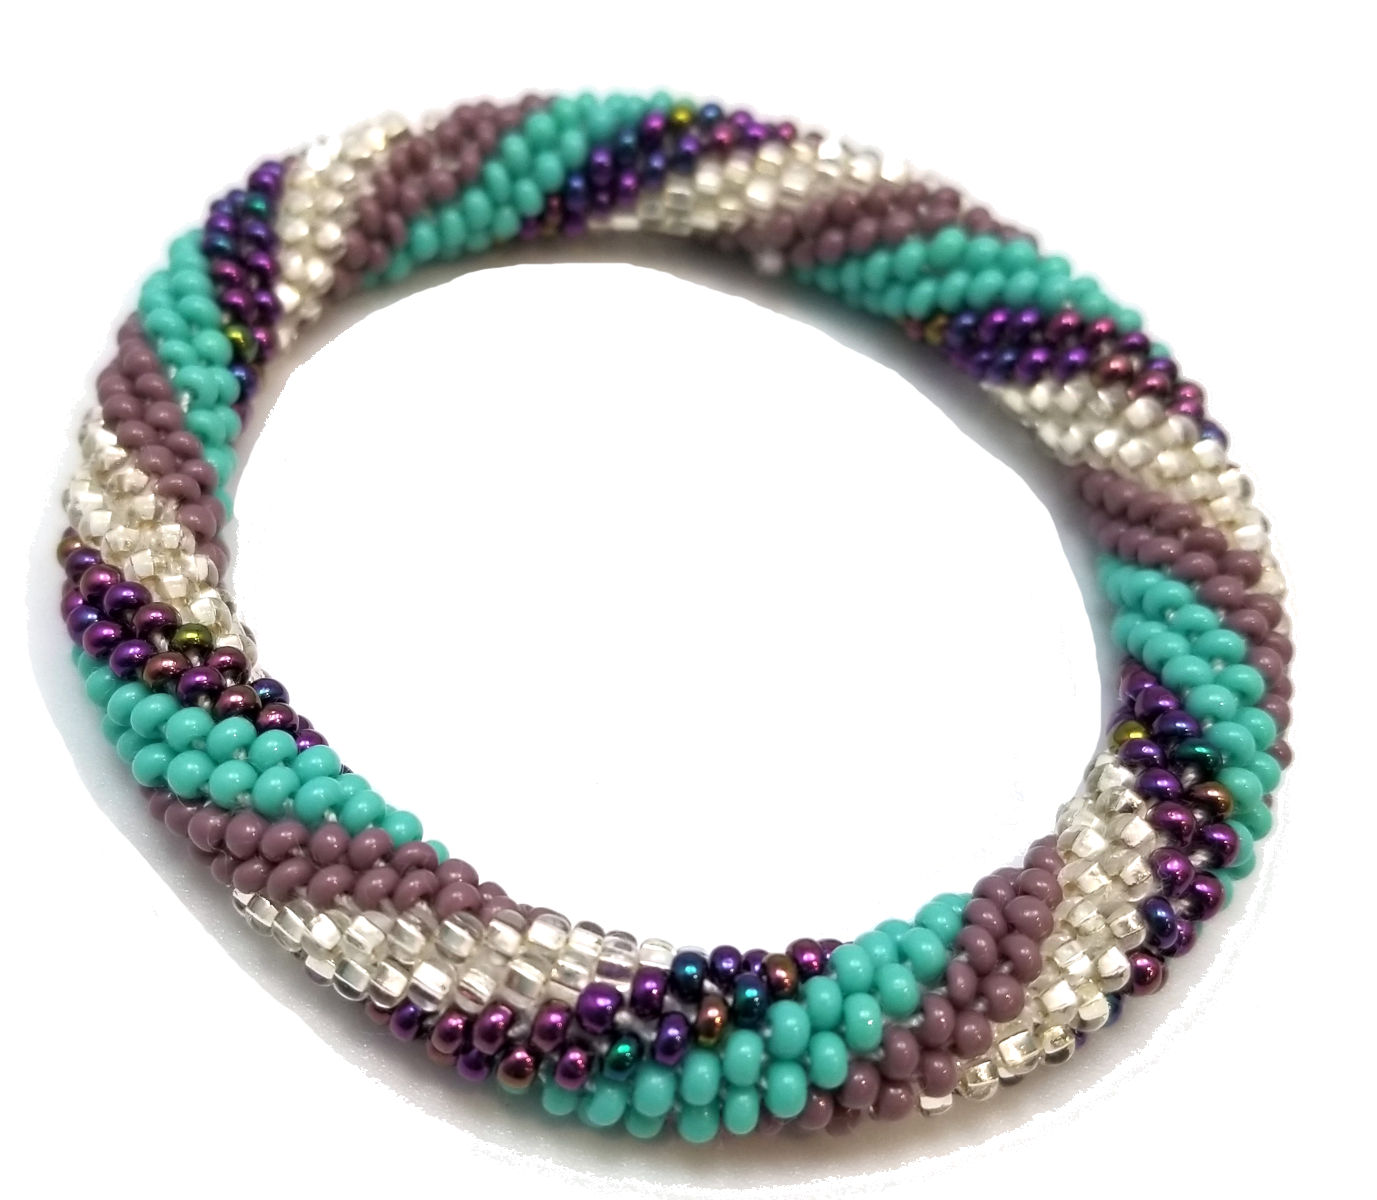 Czech glass seed bead roll-on bracelet in light and dark purple with blue and silver-tone